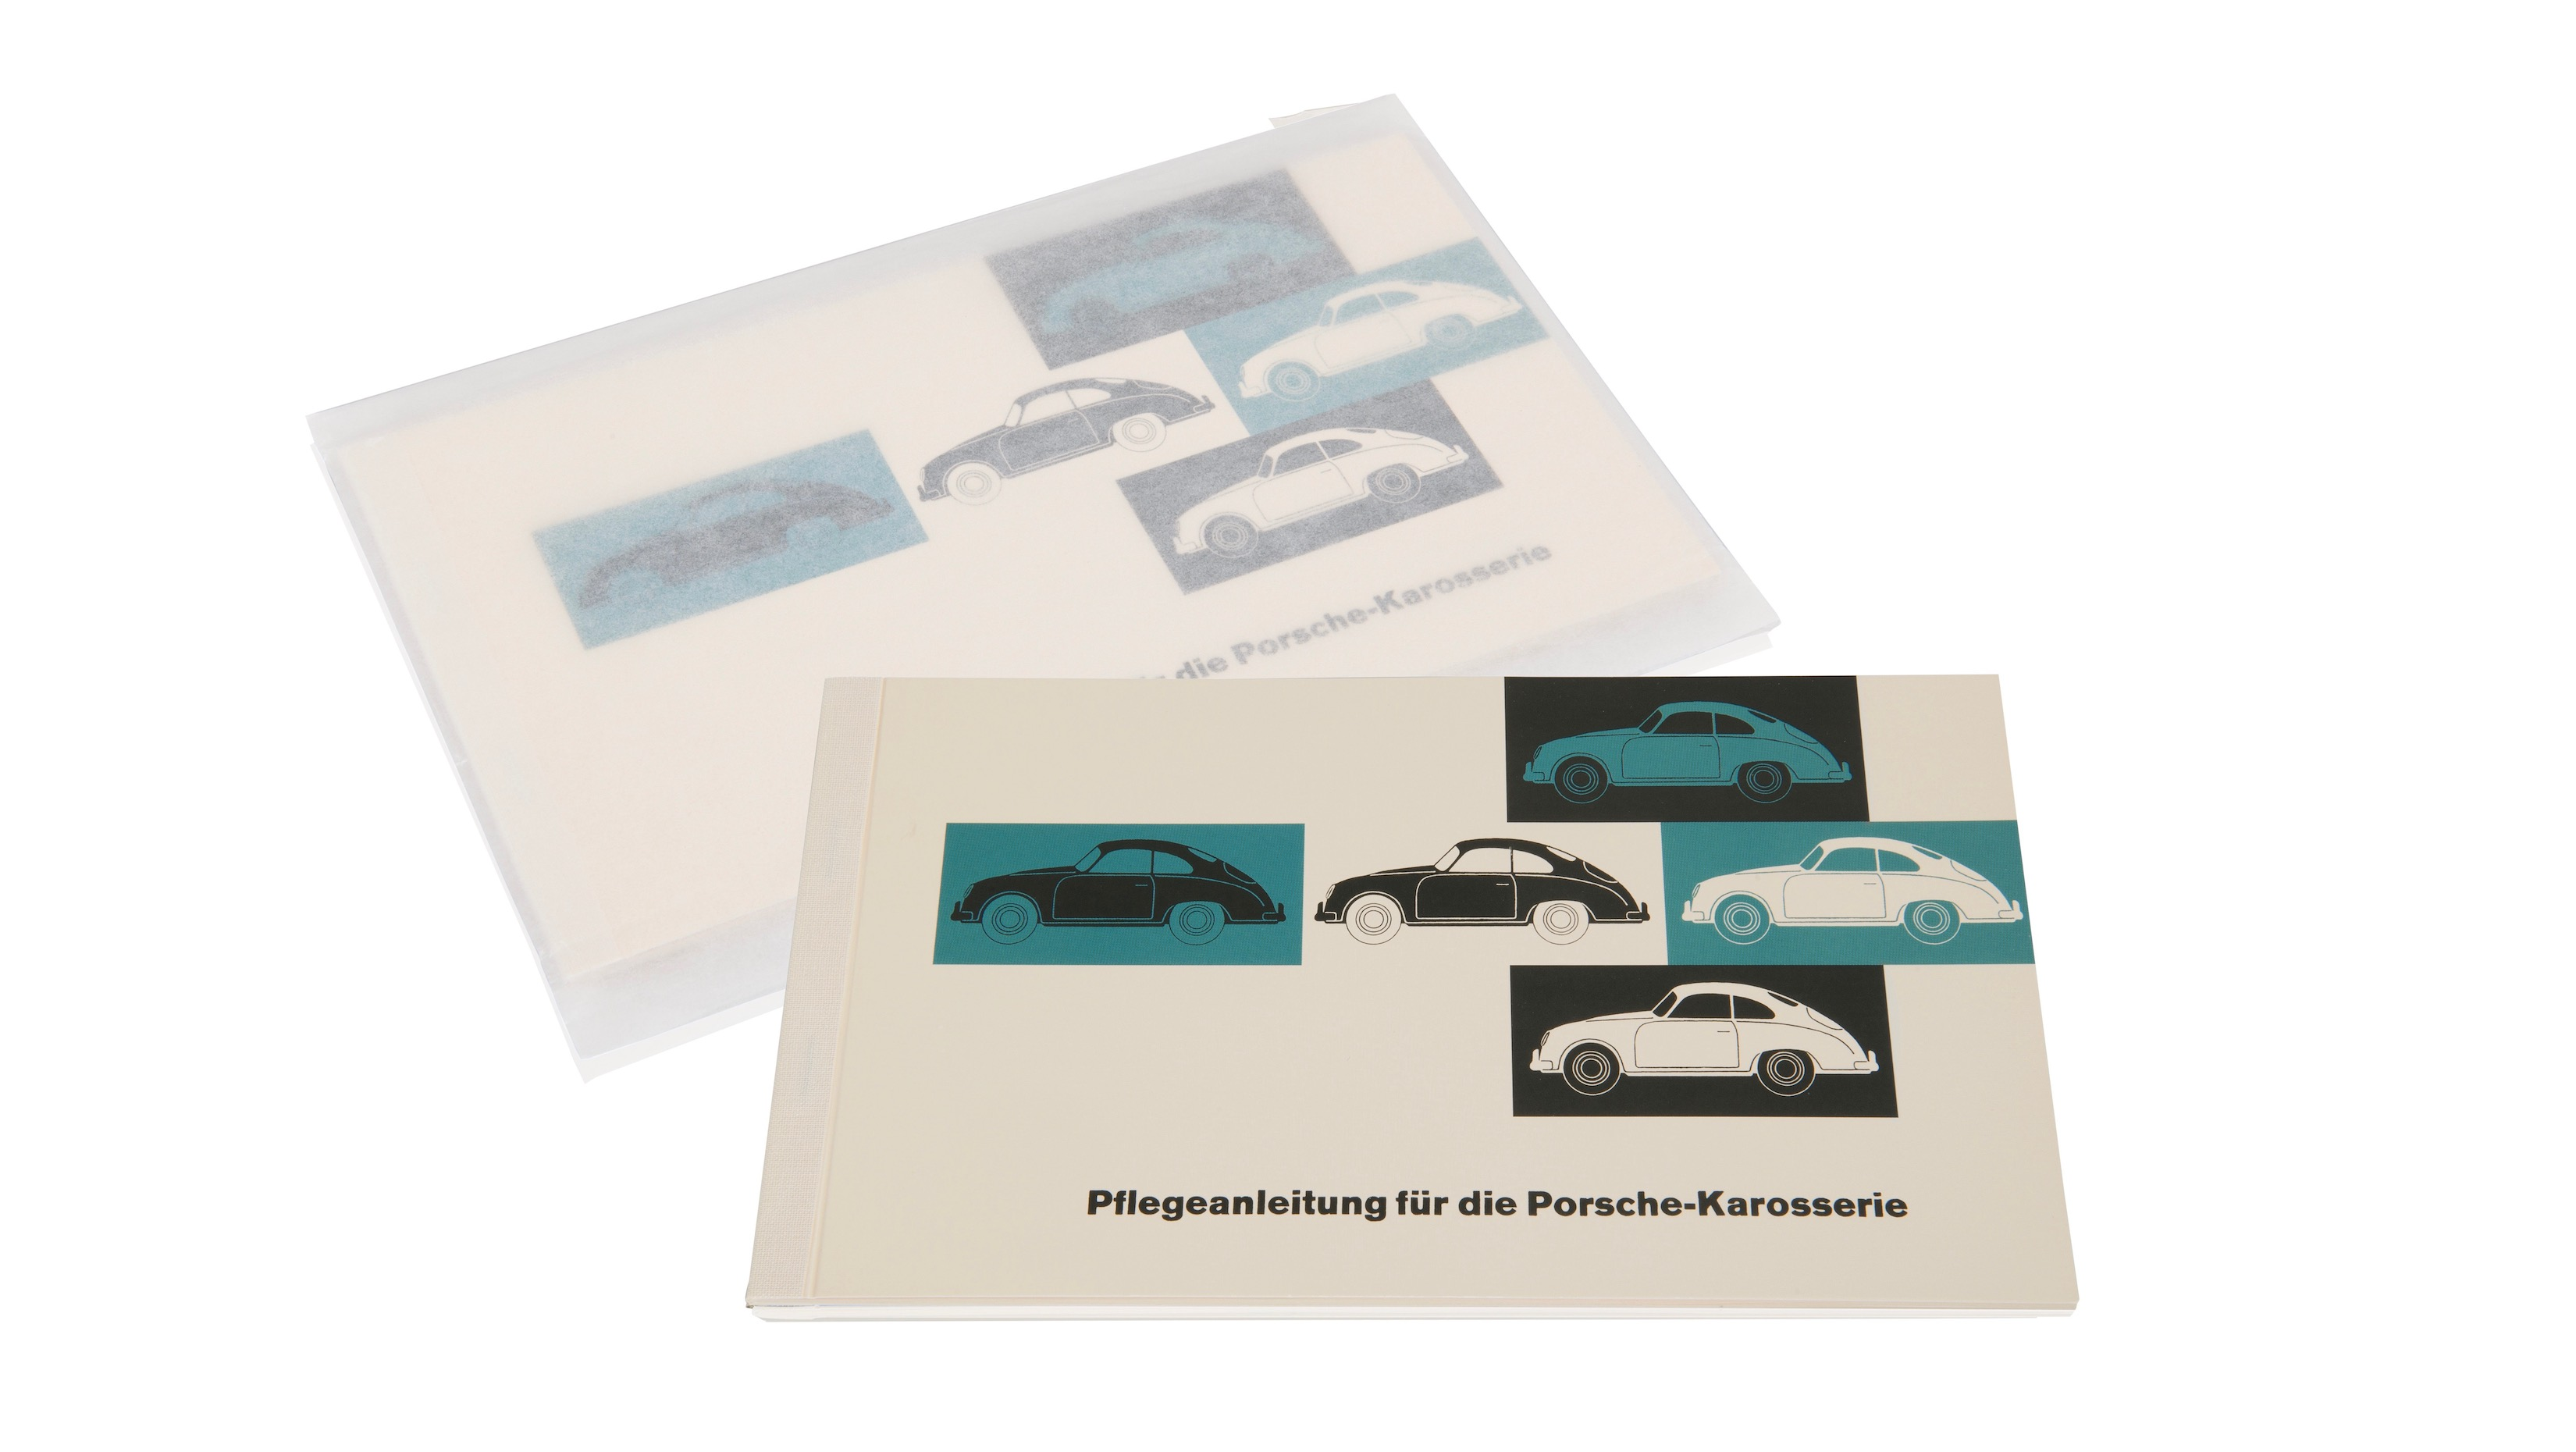 Body care information for Porsche 356 models (model years 1955-1963).